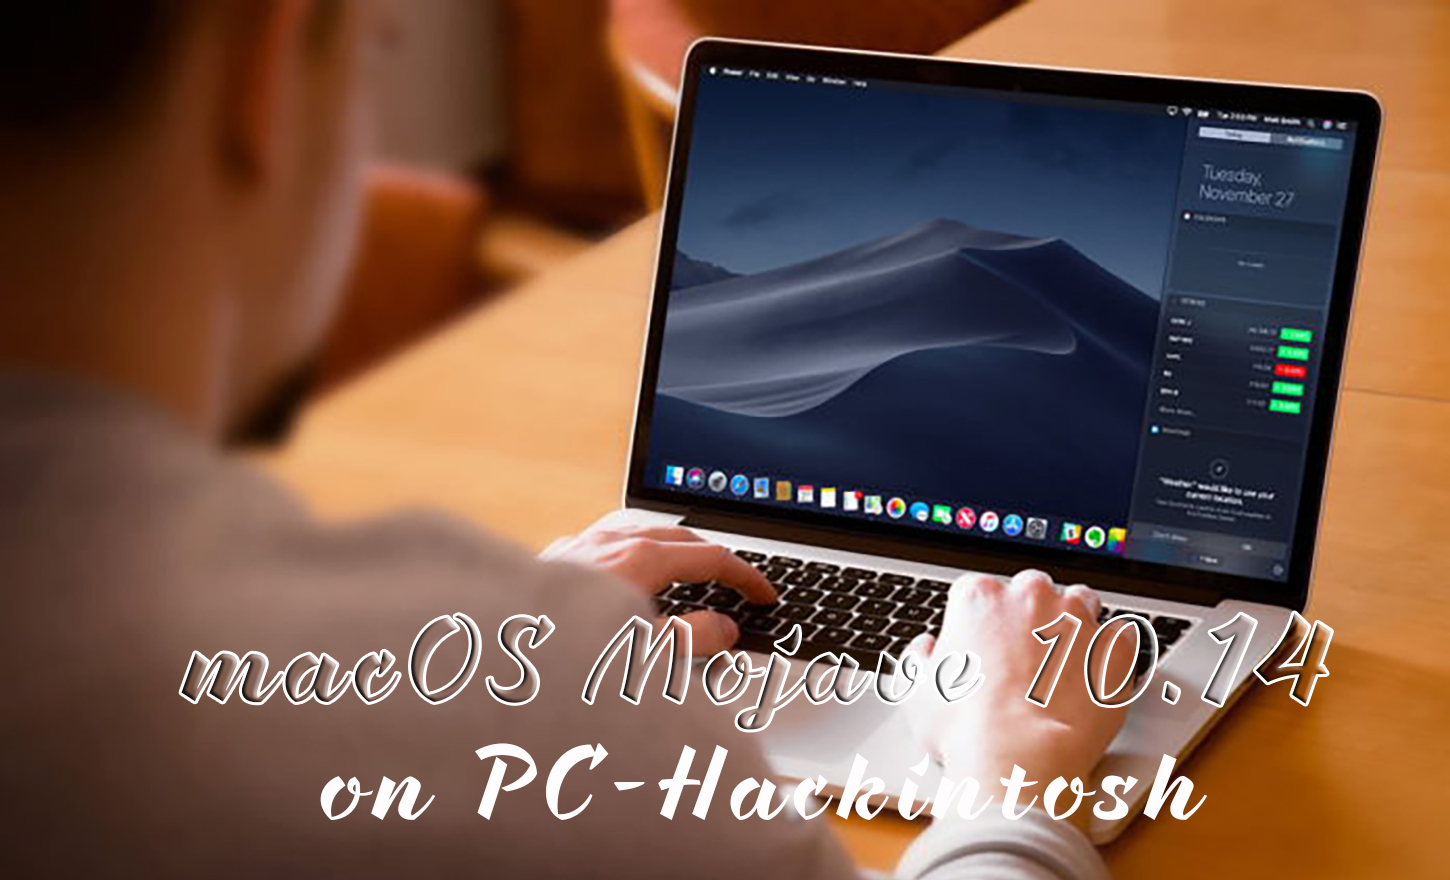 How to Install macOS Mojave 10 14 on PC-Hackintosh